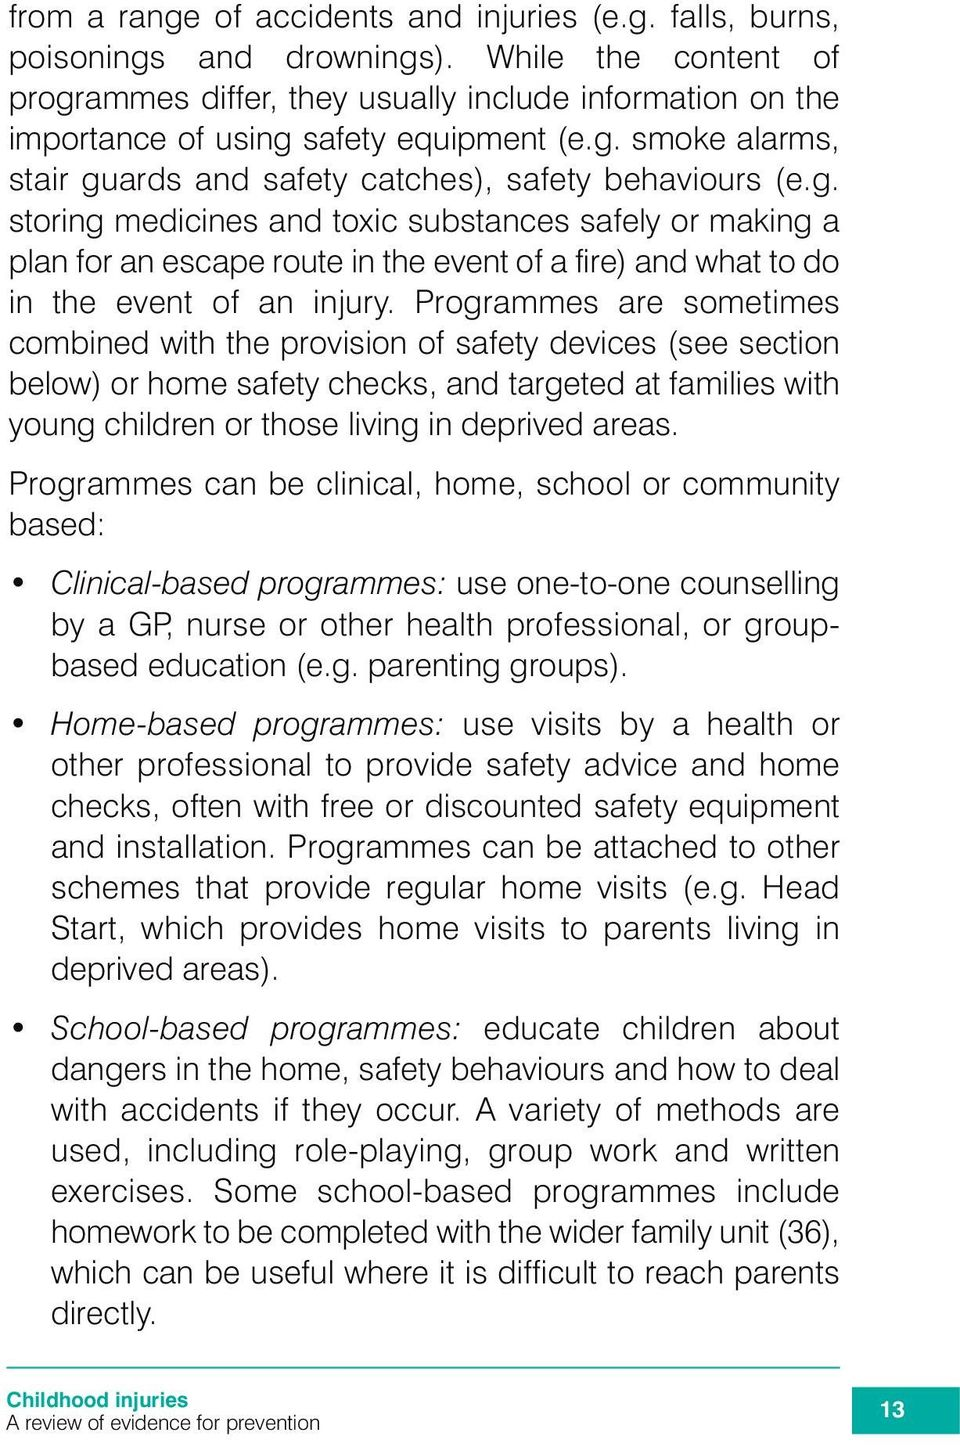 Programmes are sometimes combined with the provision of safety devices (see section below) or home safety checks, and targeted at families with young children or those living in deprived areas.